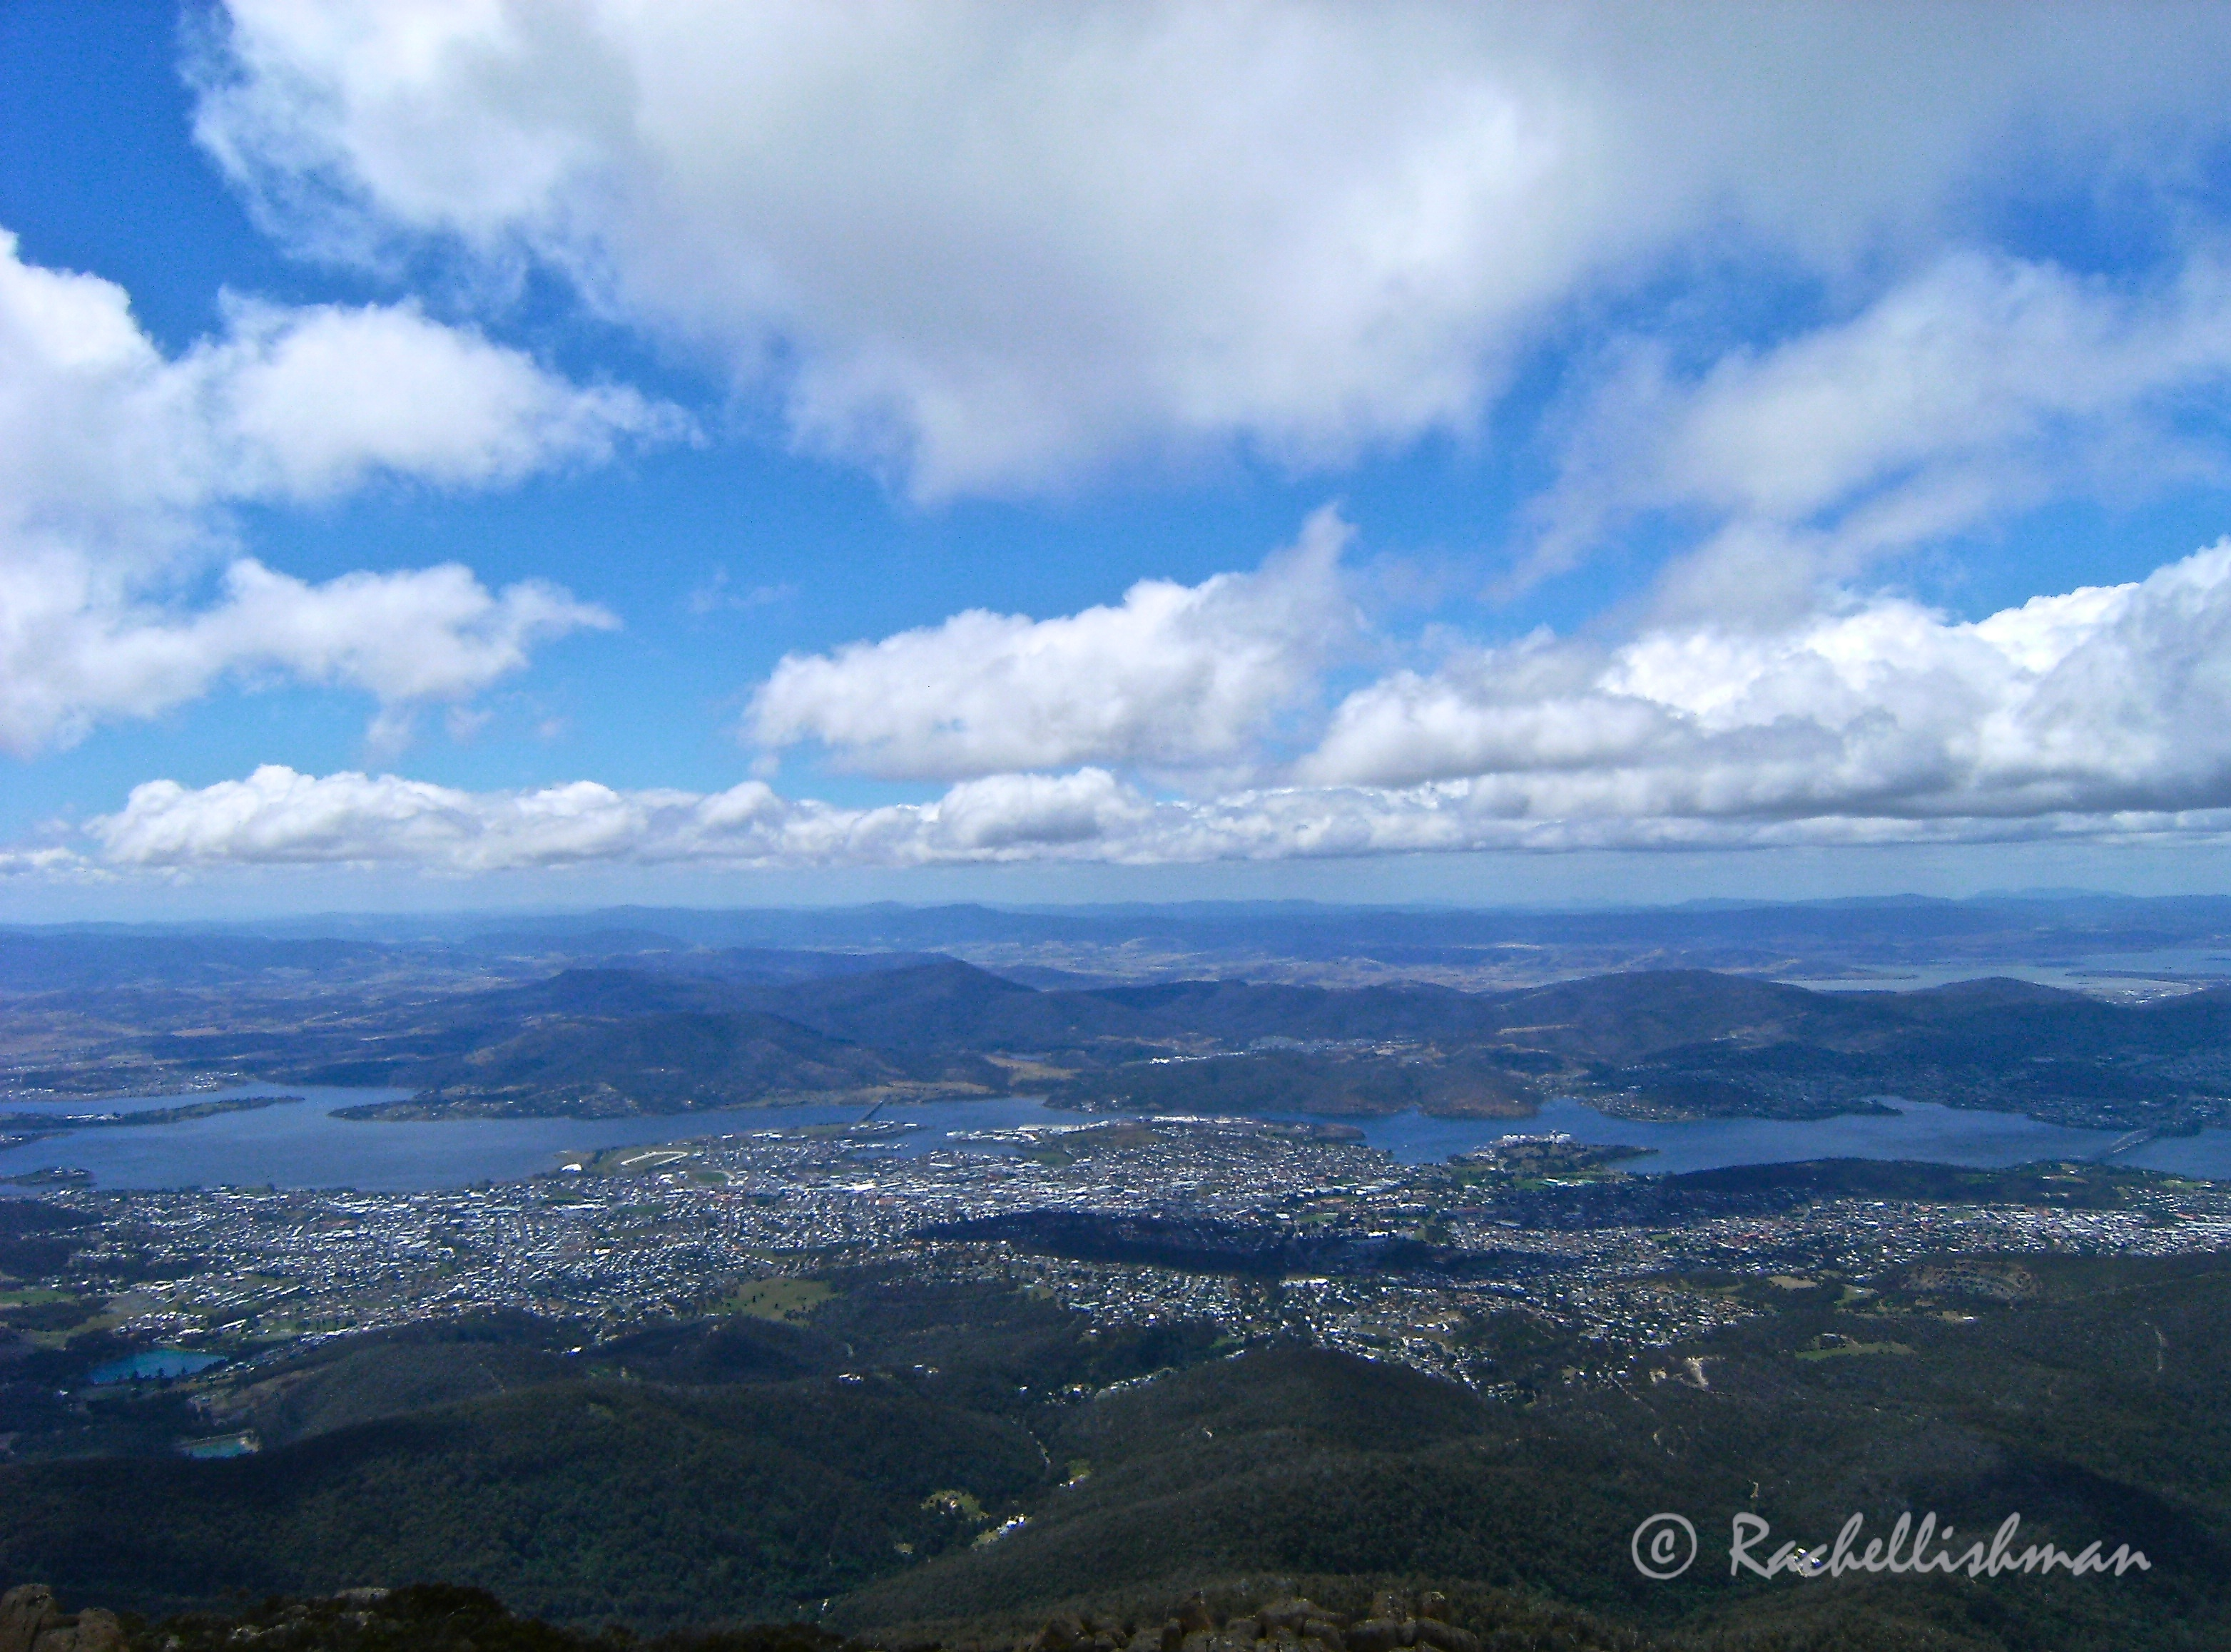 A view of Hobart from Mt Wellington